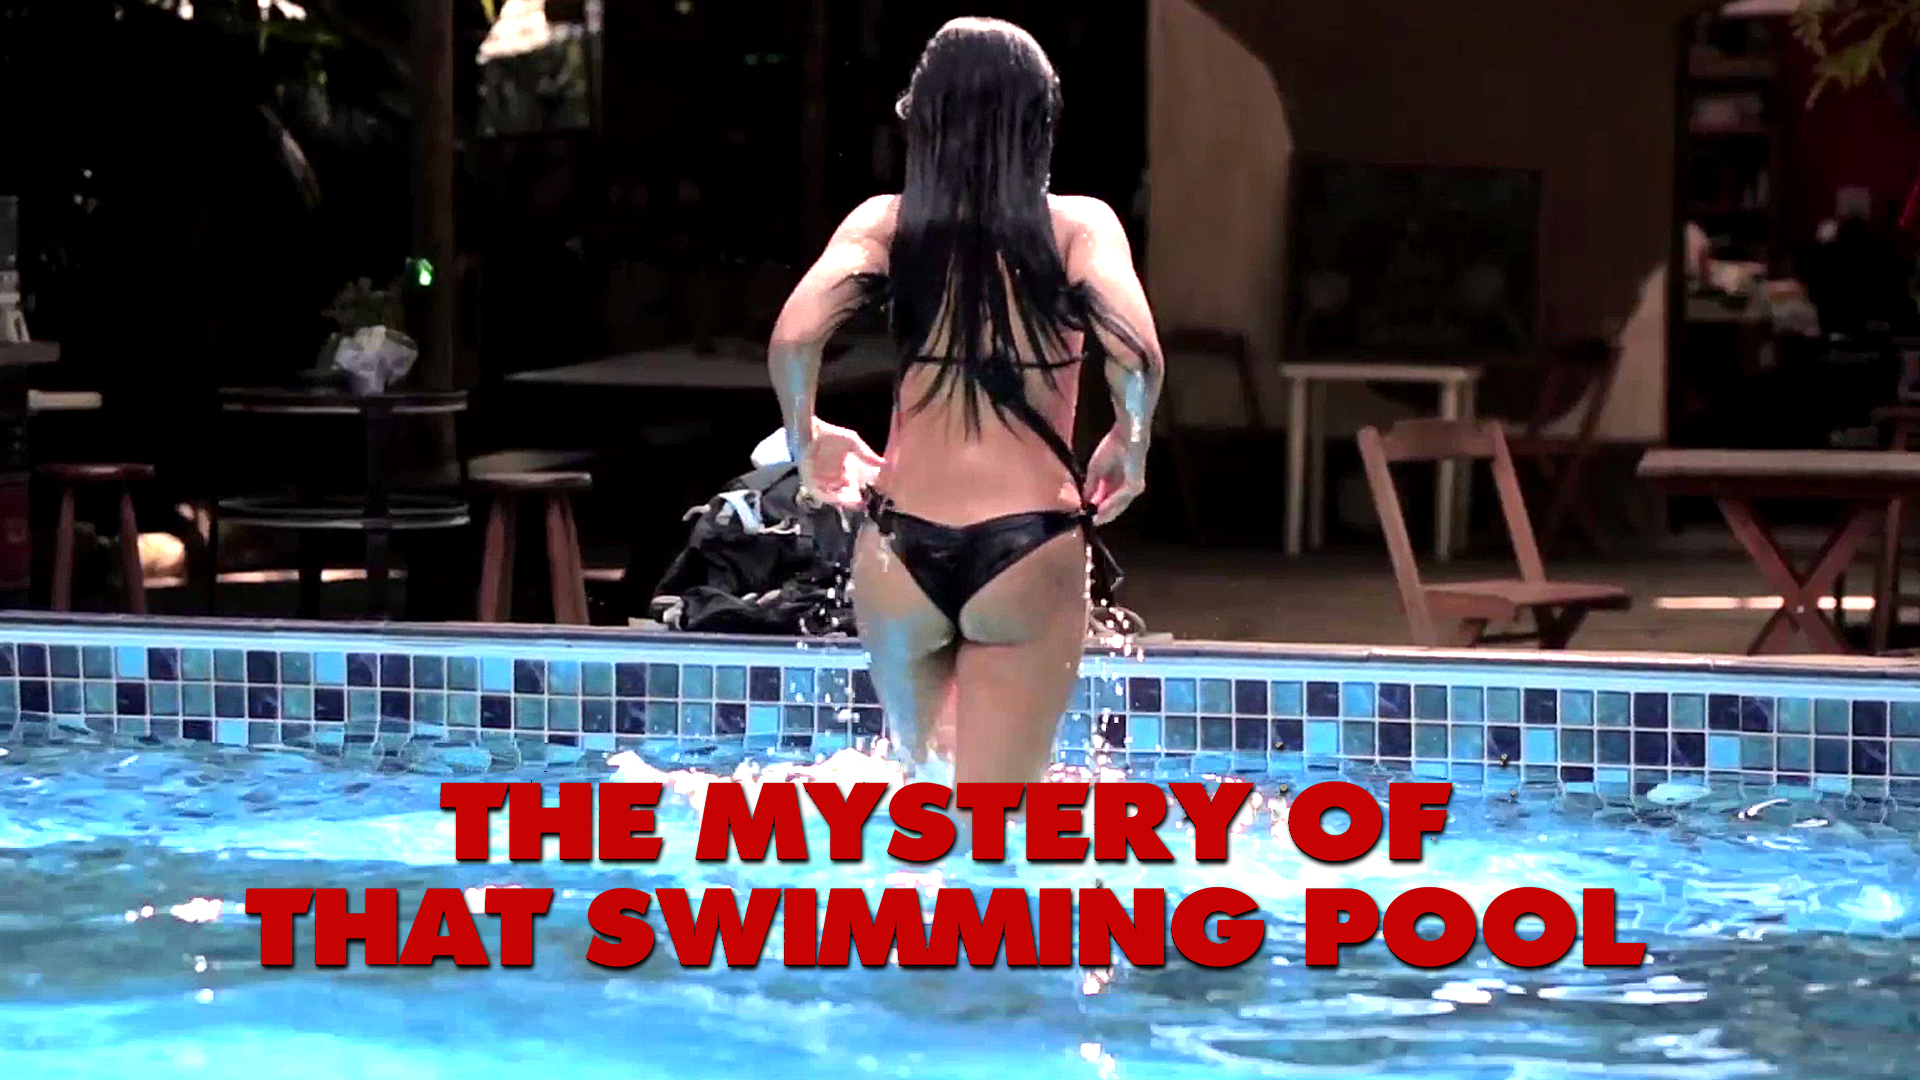 The Mystery of That Swimming Pool